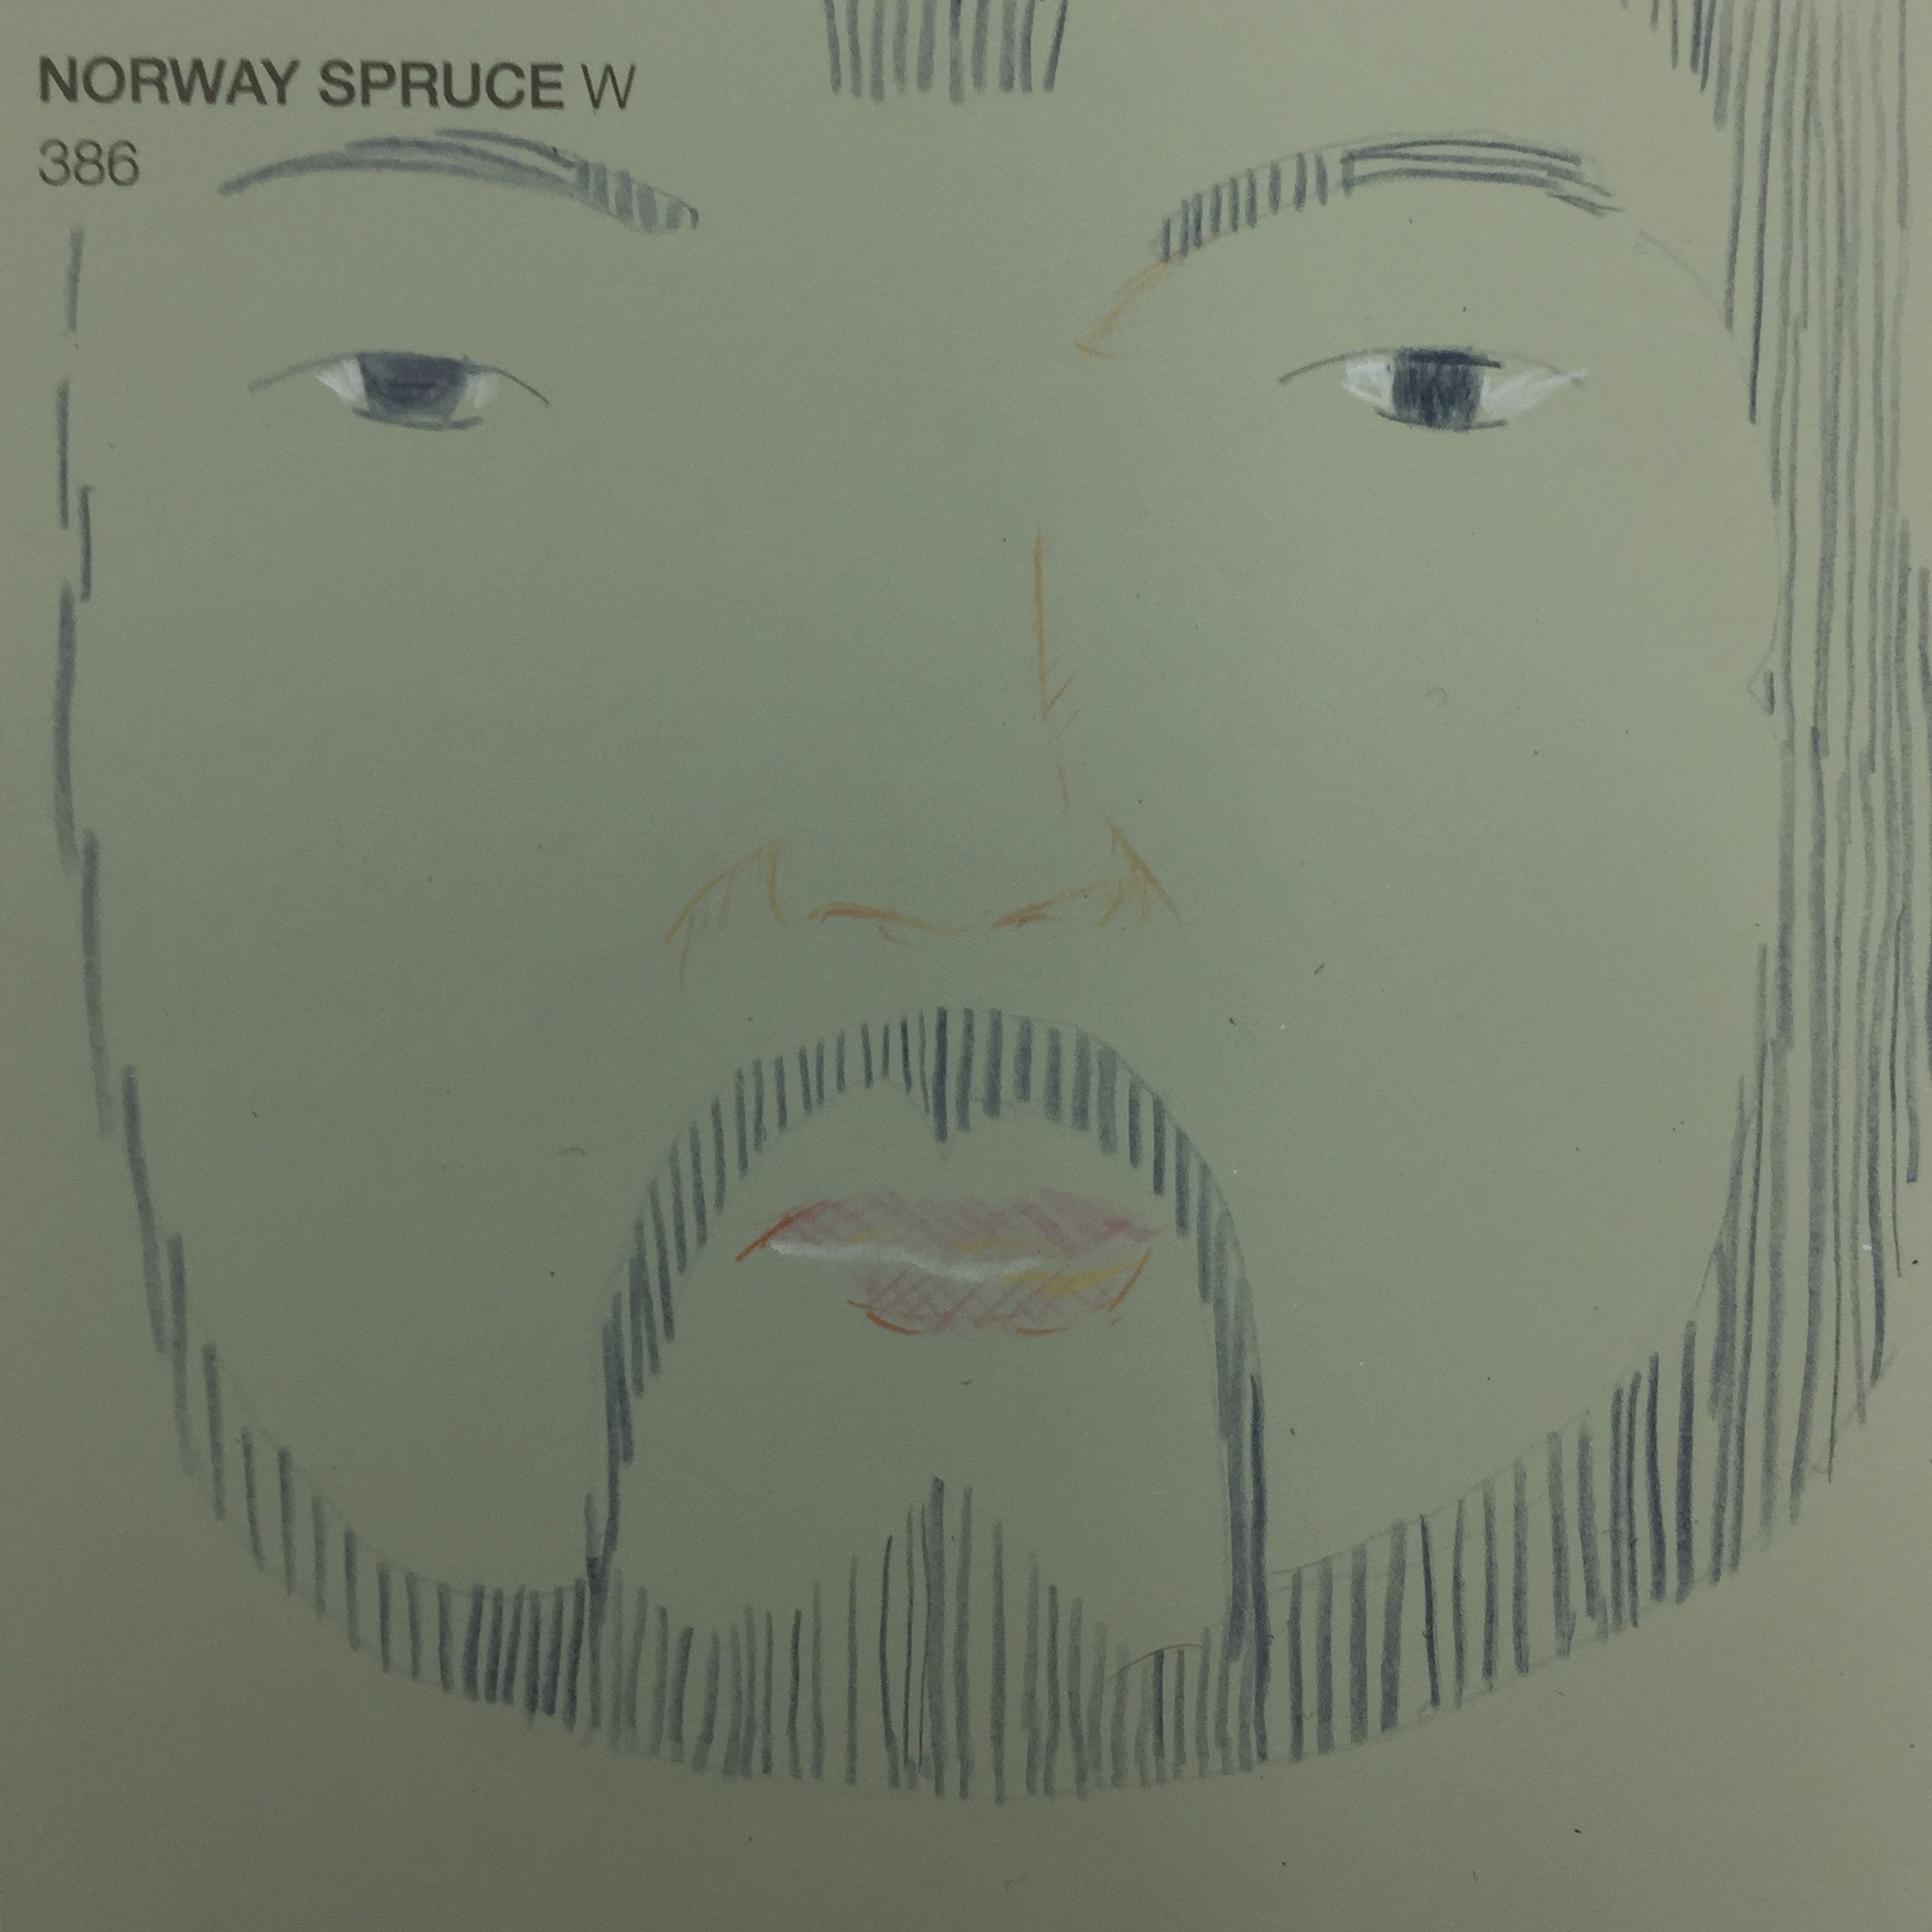 mongolian facial hair - pencil on paint chip